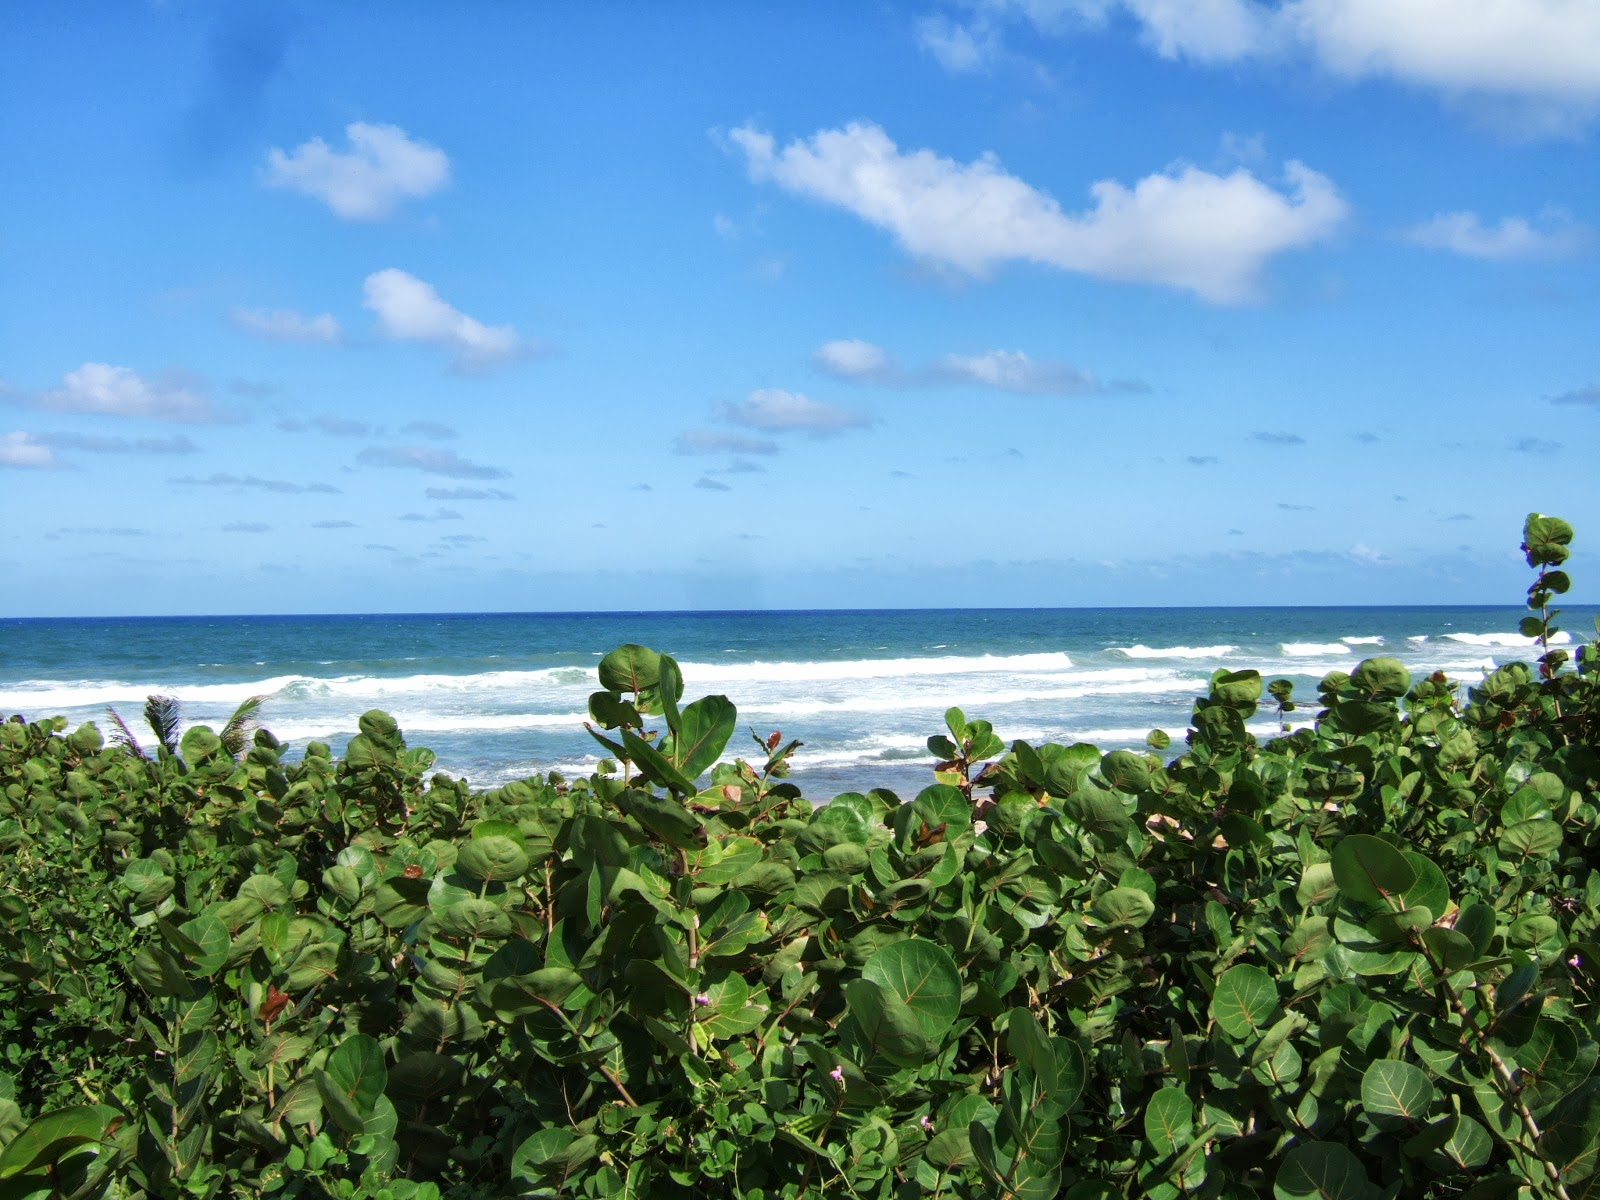 Turquoise sea waters in Bathsheba behind a bed of green flowers